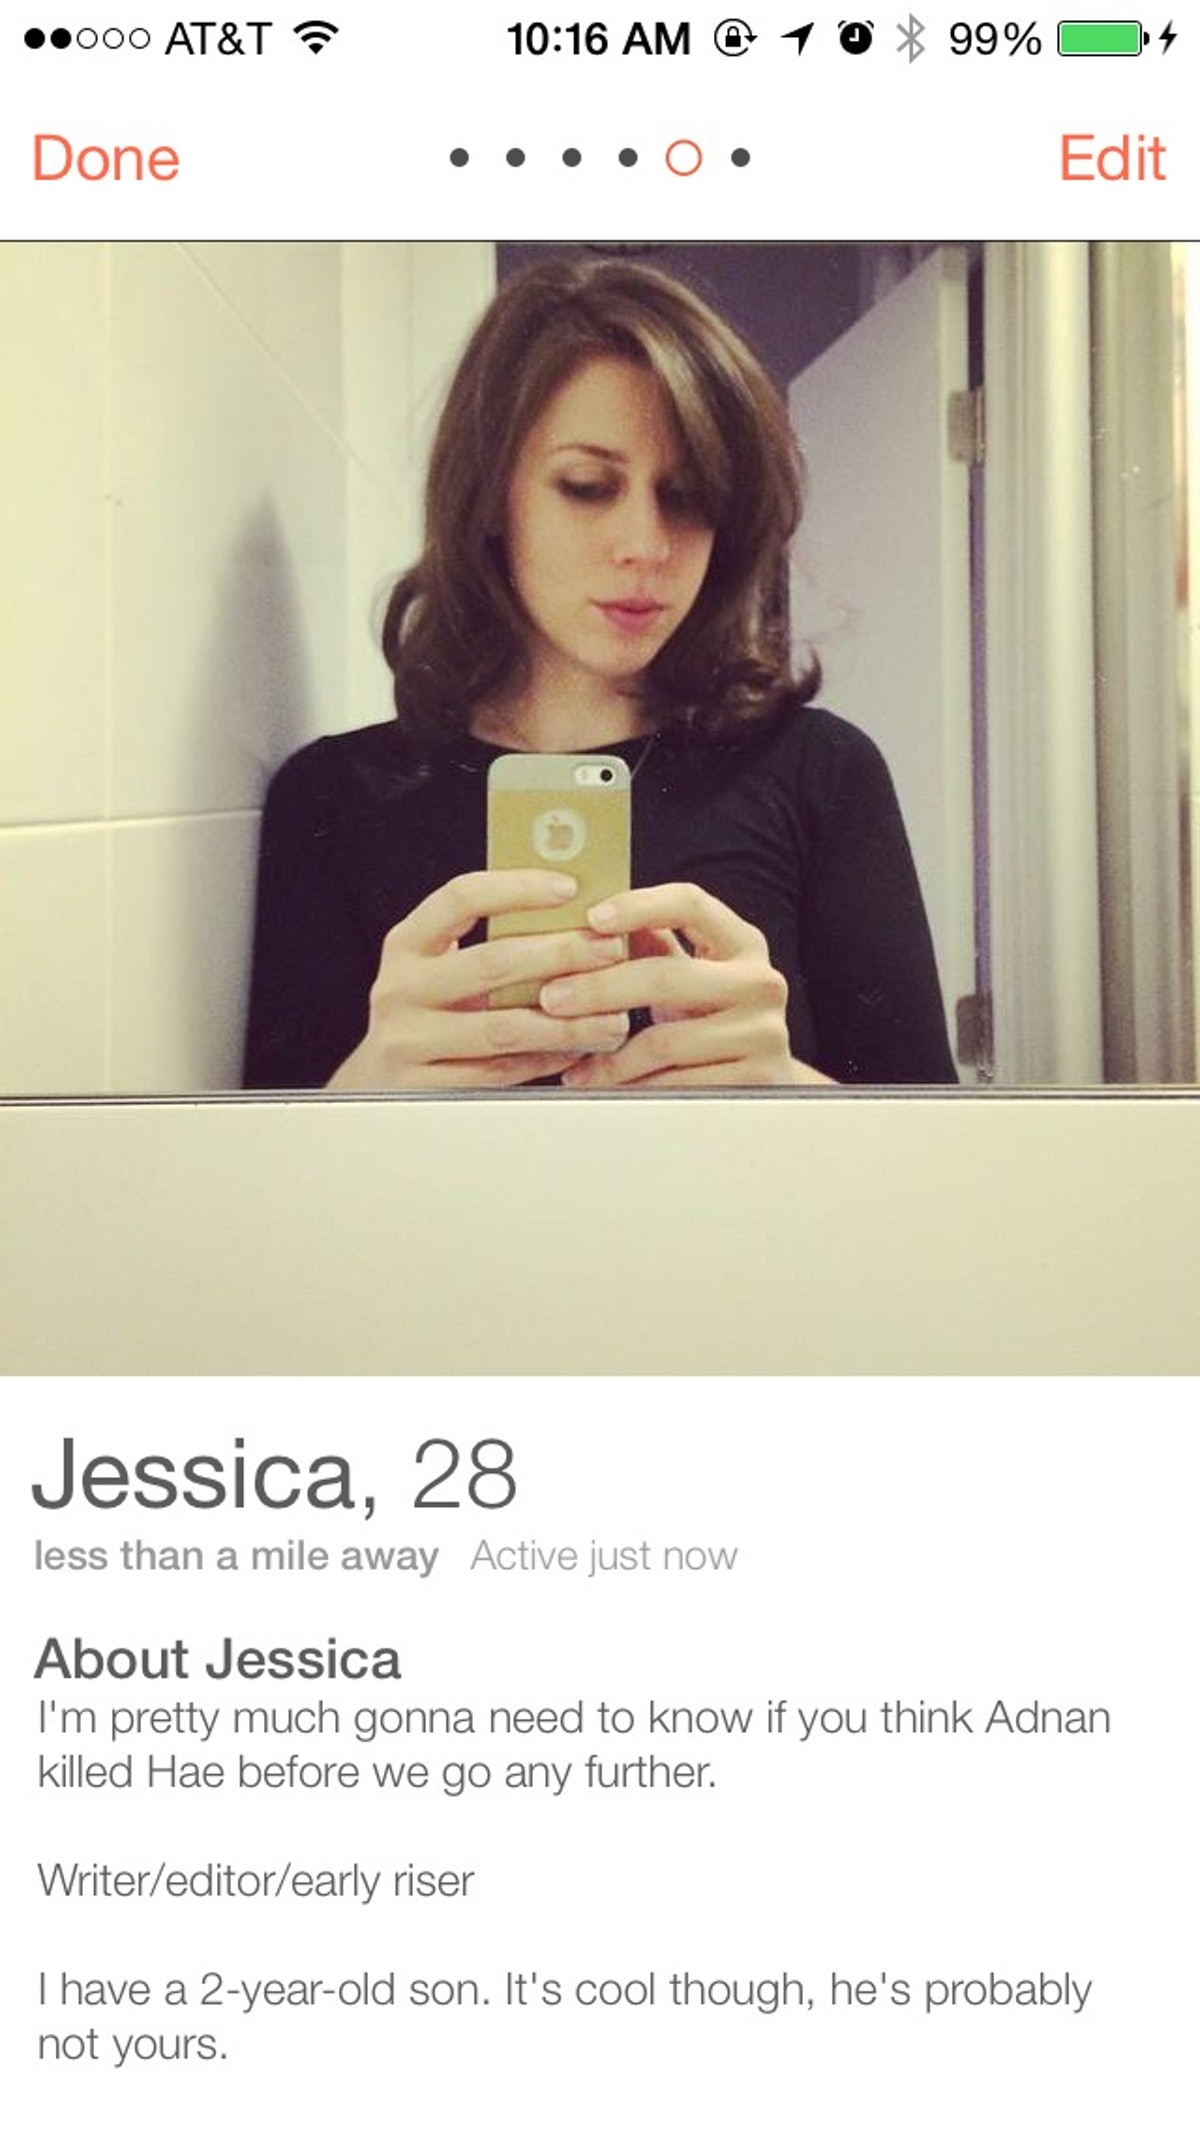 I Talked to People on Tinder About 'Serial' and This is What Happened